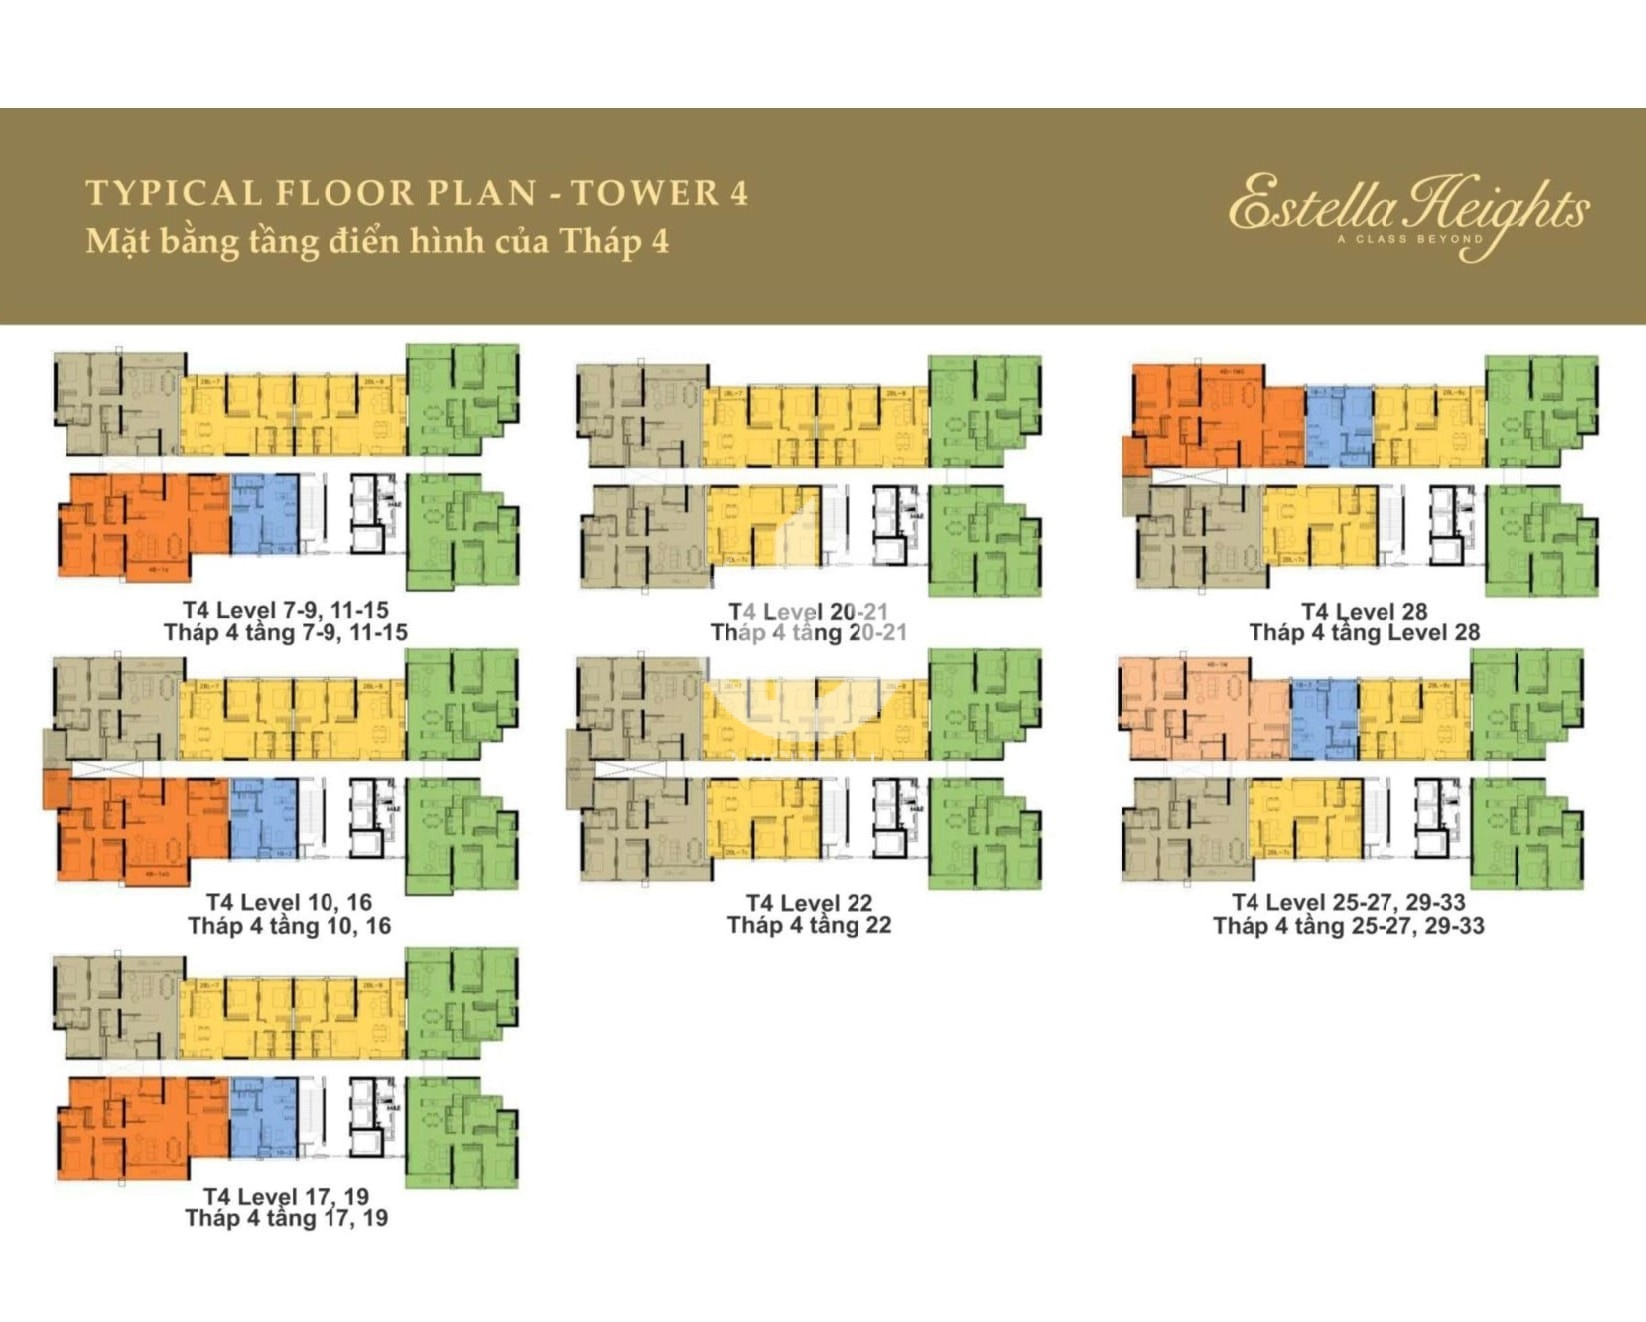 Layout of Tower 4 in Estella Heights apartment